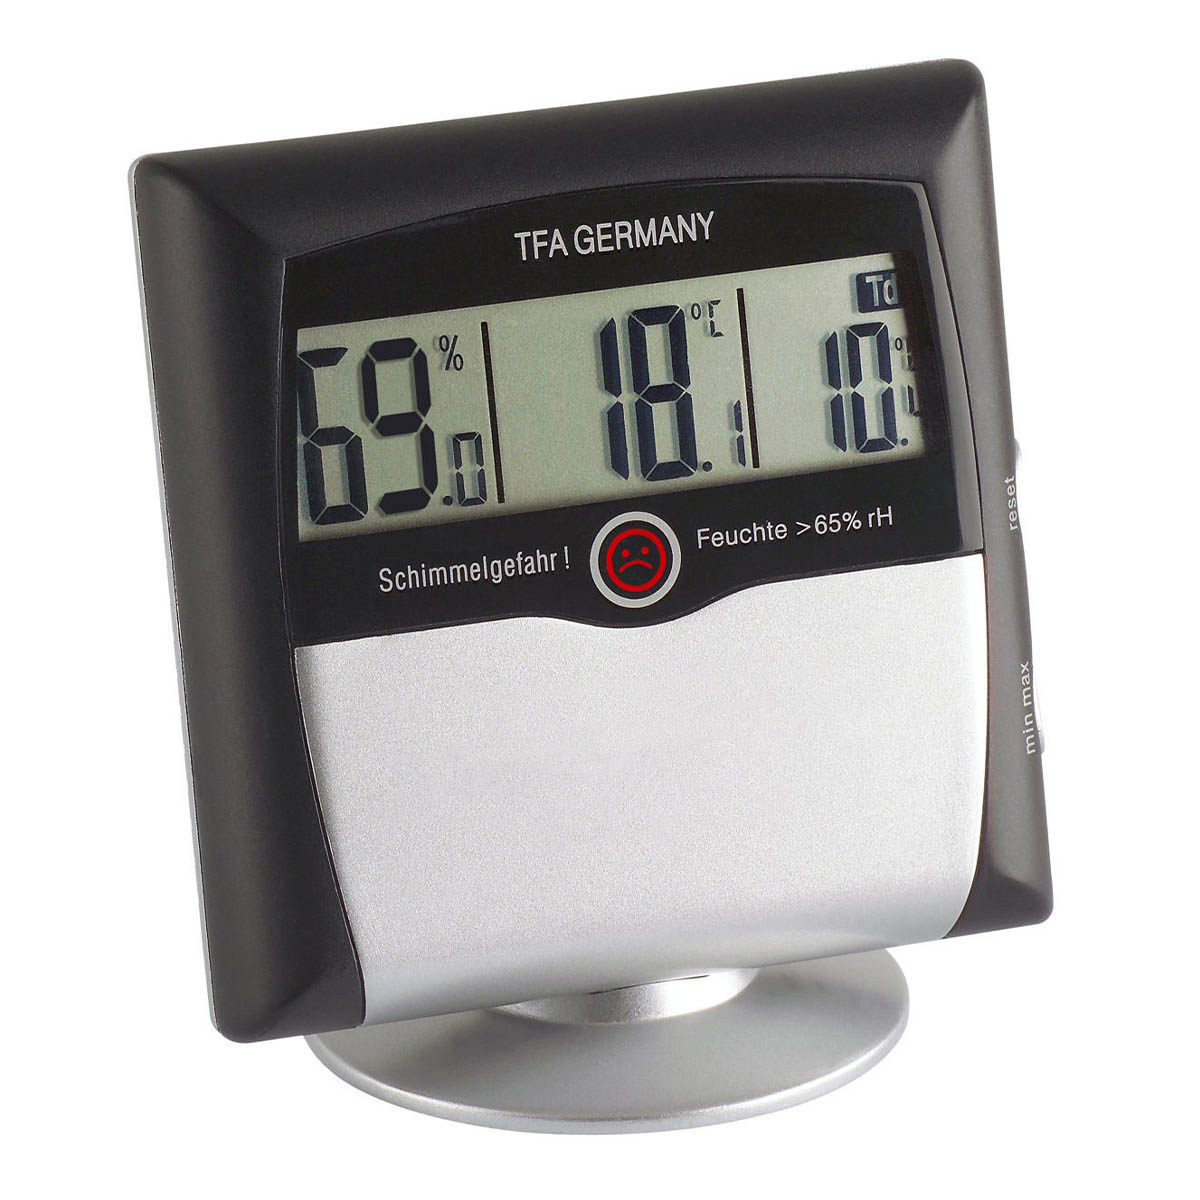 Digitales Thermo-Hygrometer COMFORT CONTROL mit Schimmelwarnfunktion